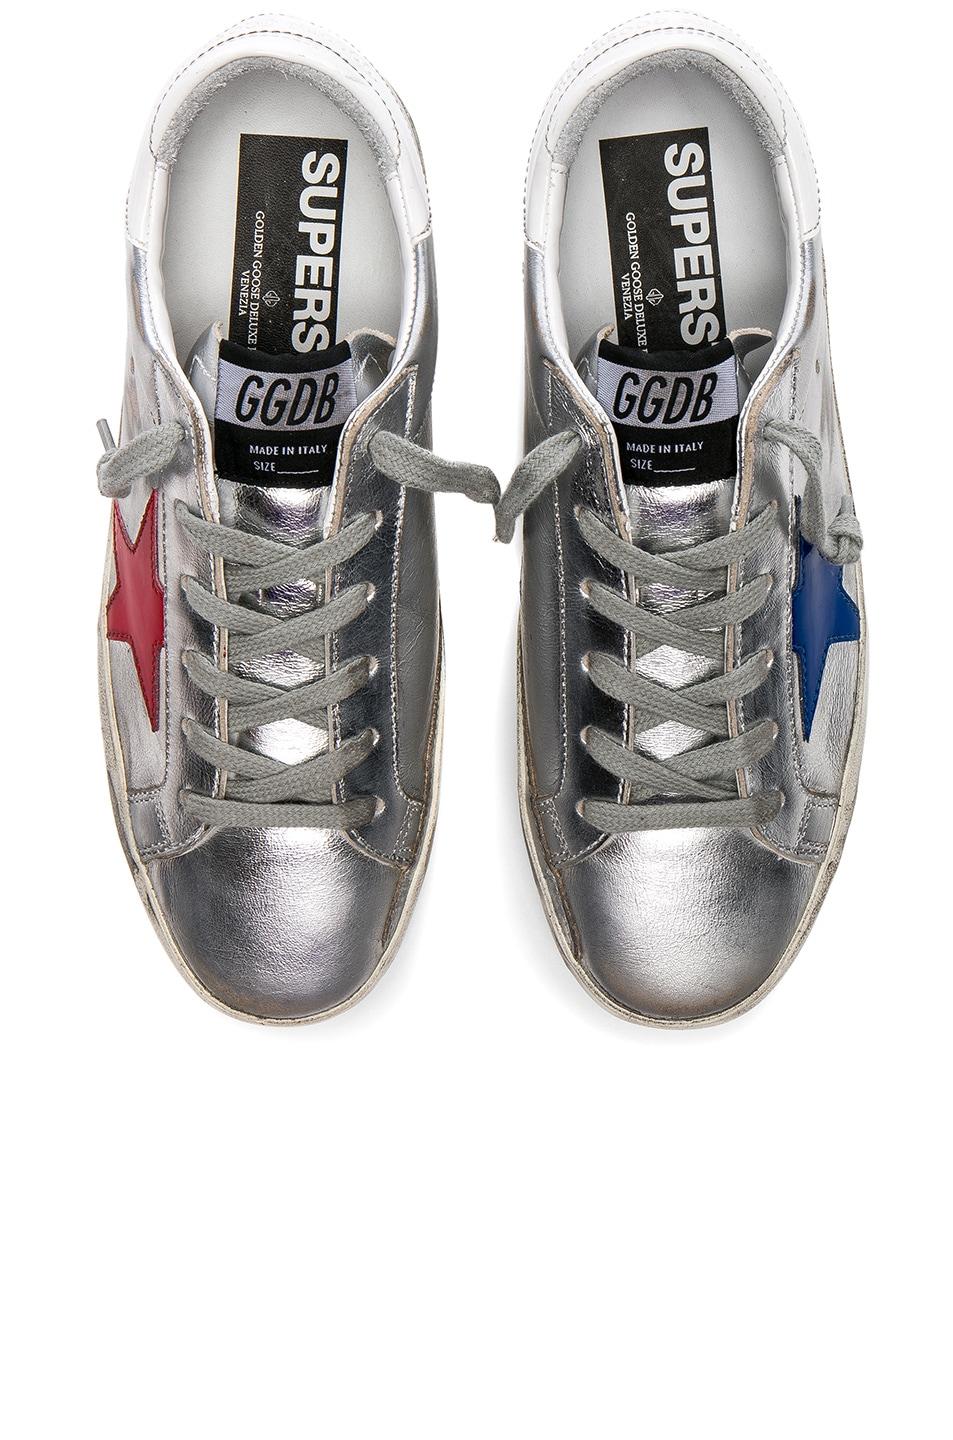 Image 1 of Golden Goose Leather Superstar Sneakers in Silver, Red & Blue Star